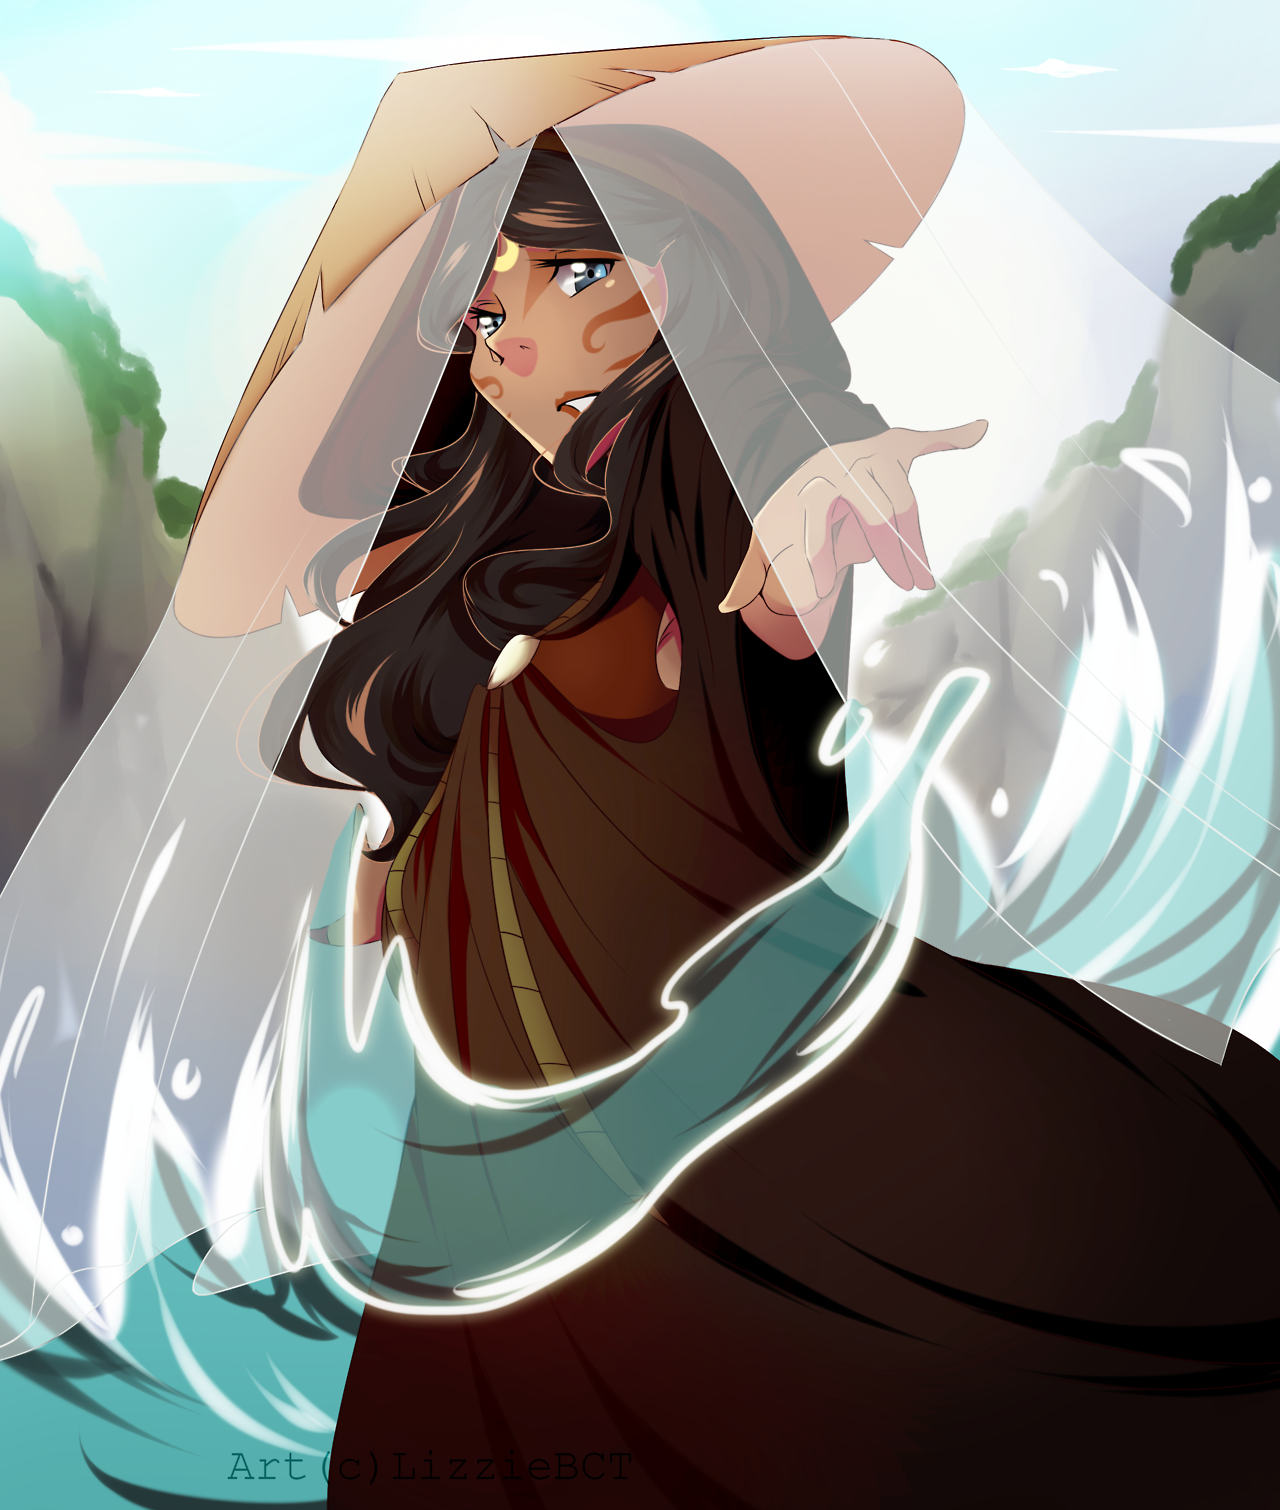 My finished piece of Katara from Avatar The Last Airbender